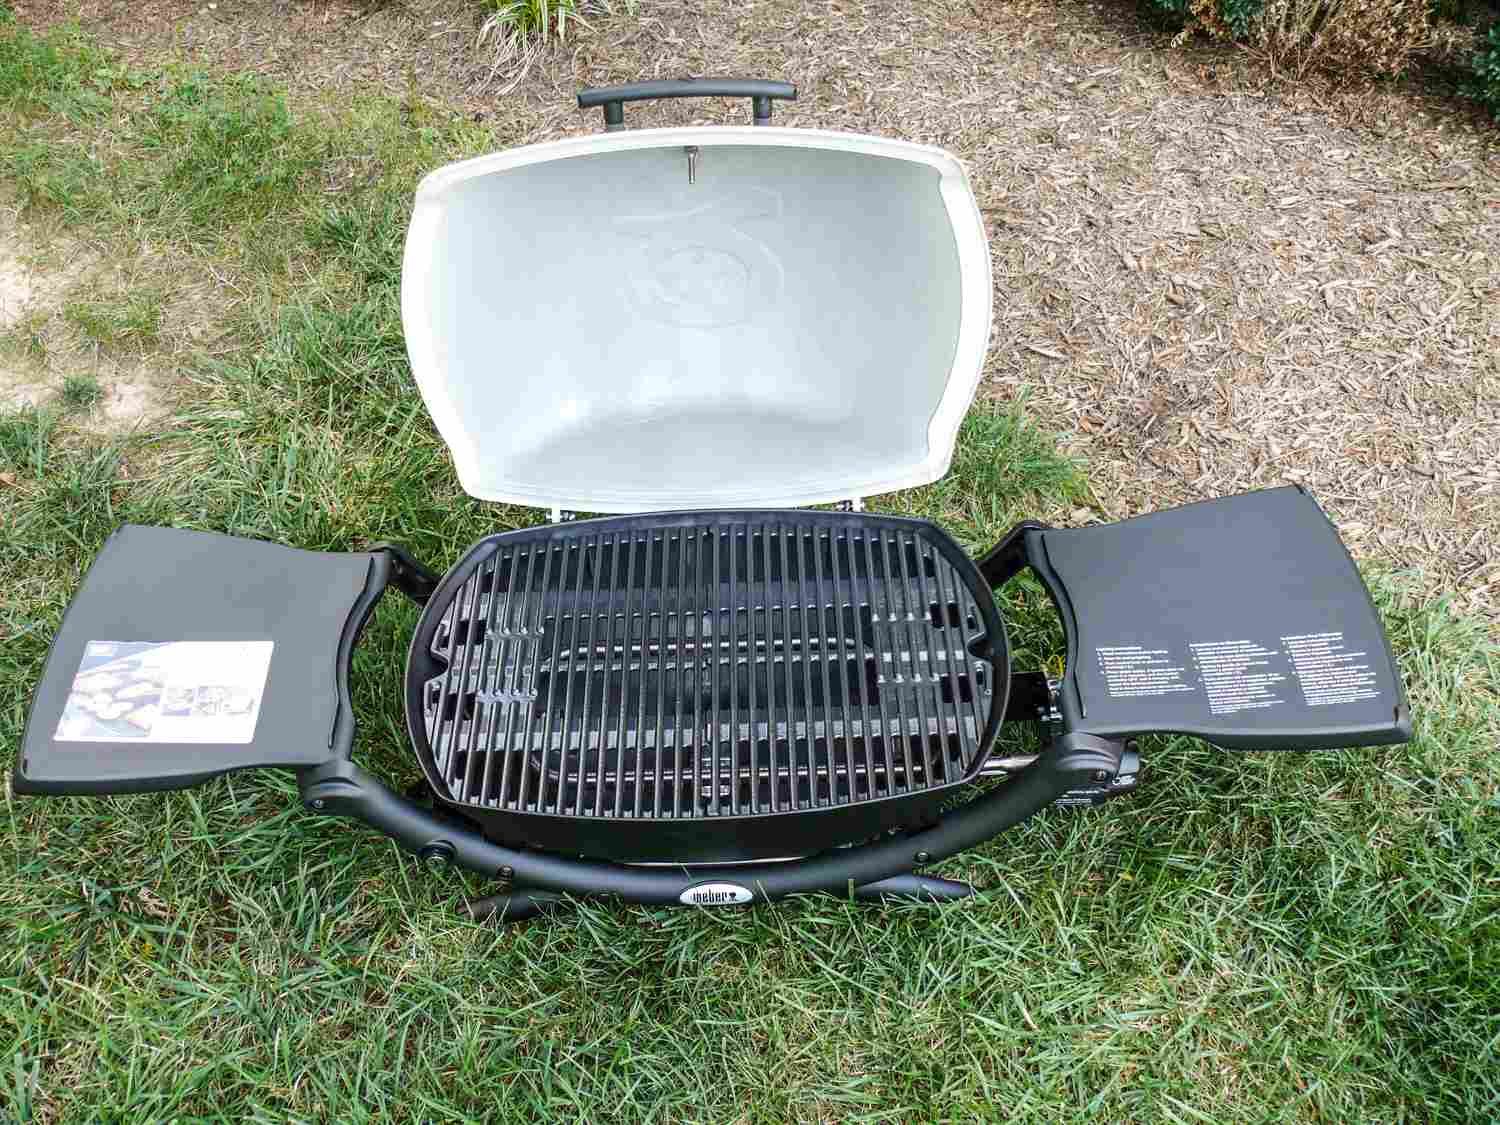 If You Re Not Looking For A Charcoal Or Gas Grill Our Testers Thought This Model Was Great Alternative It S Compact And Easy To Use Once Heated Up